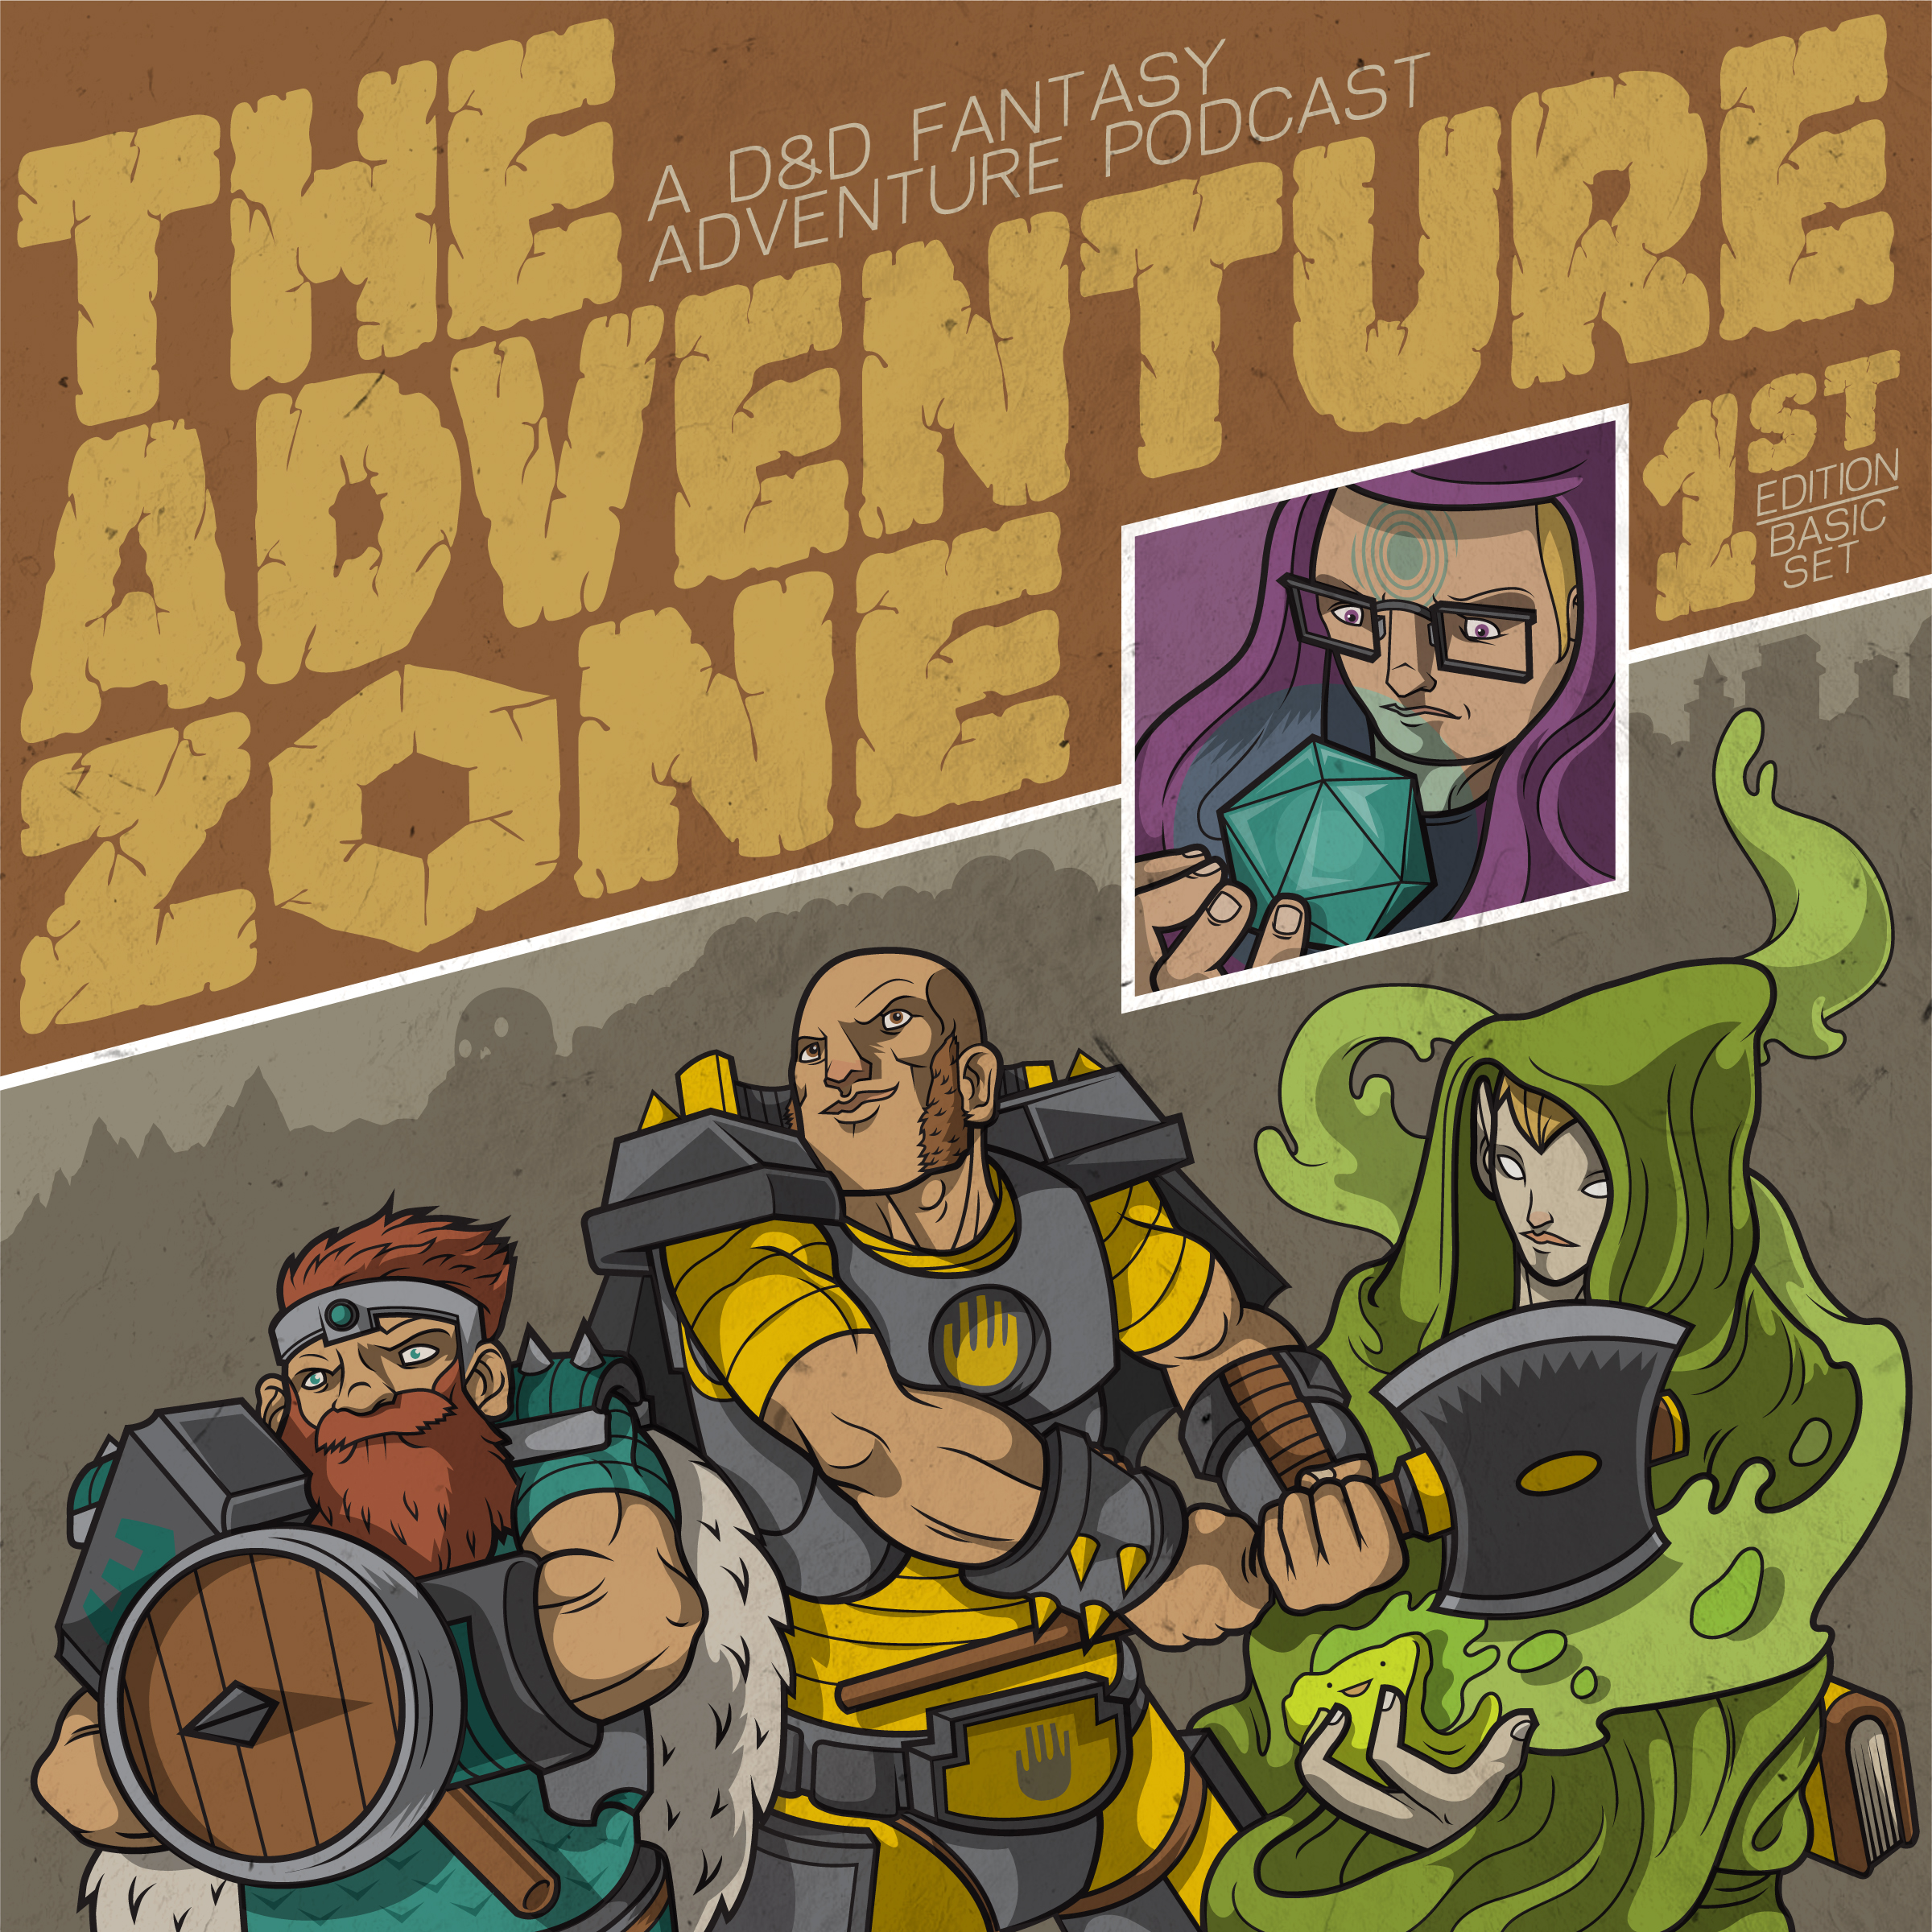 The Adventure Zone is an Actual Play D&D podcast on Maximum Fun featuring myself, my brothers Justin and Travis, and my dad, Clint. I'm the DM for the game, which means I spend lots and lots of time crafting beautiful, intricate narratives that my dumb players try to destroy at every turn. I also edit and compose music for The Adventure Zone.